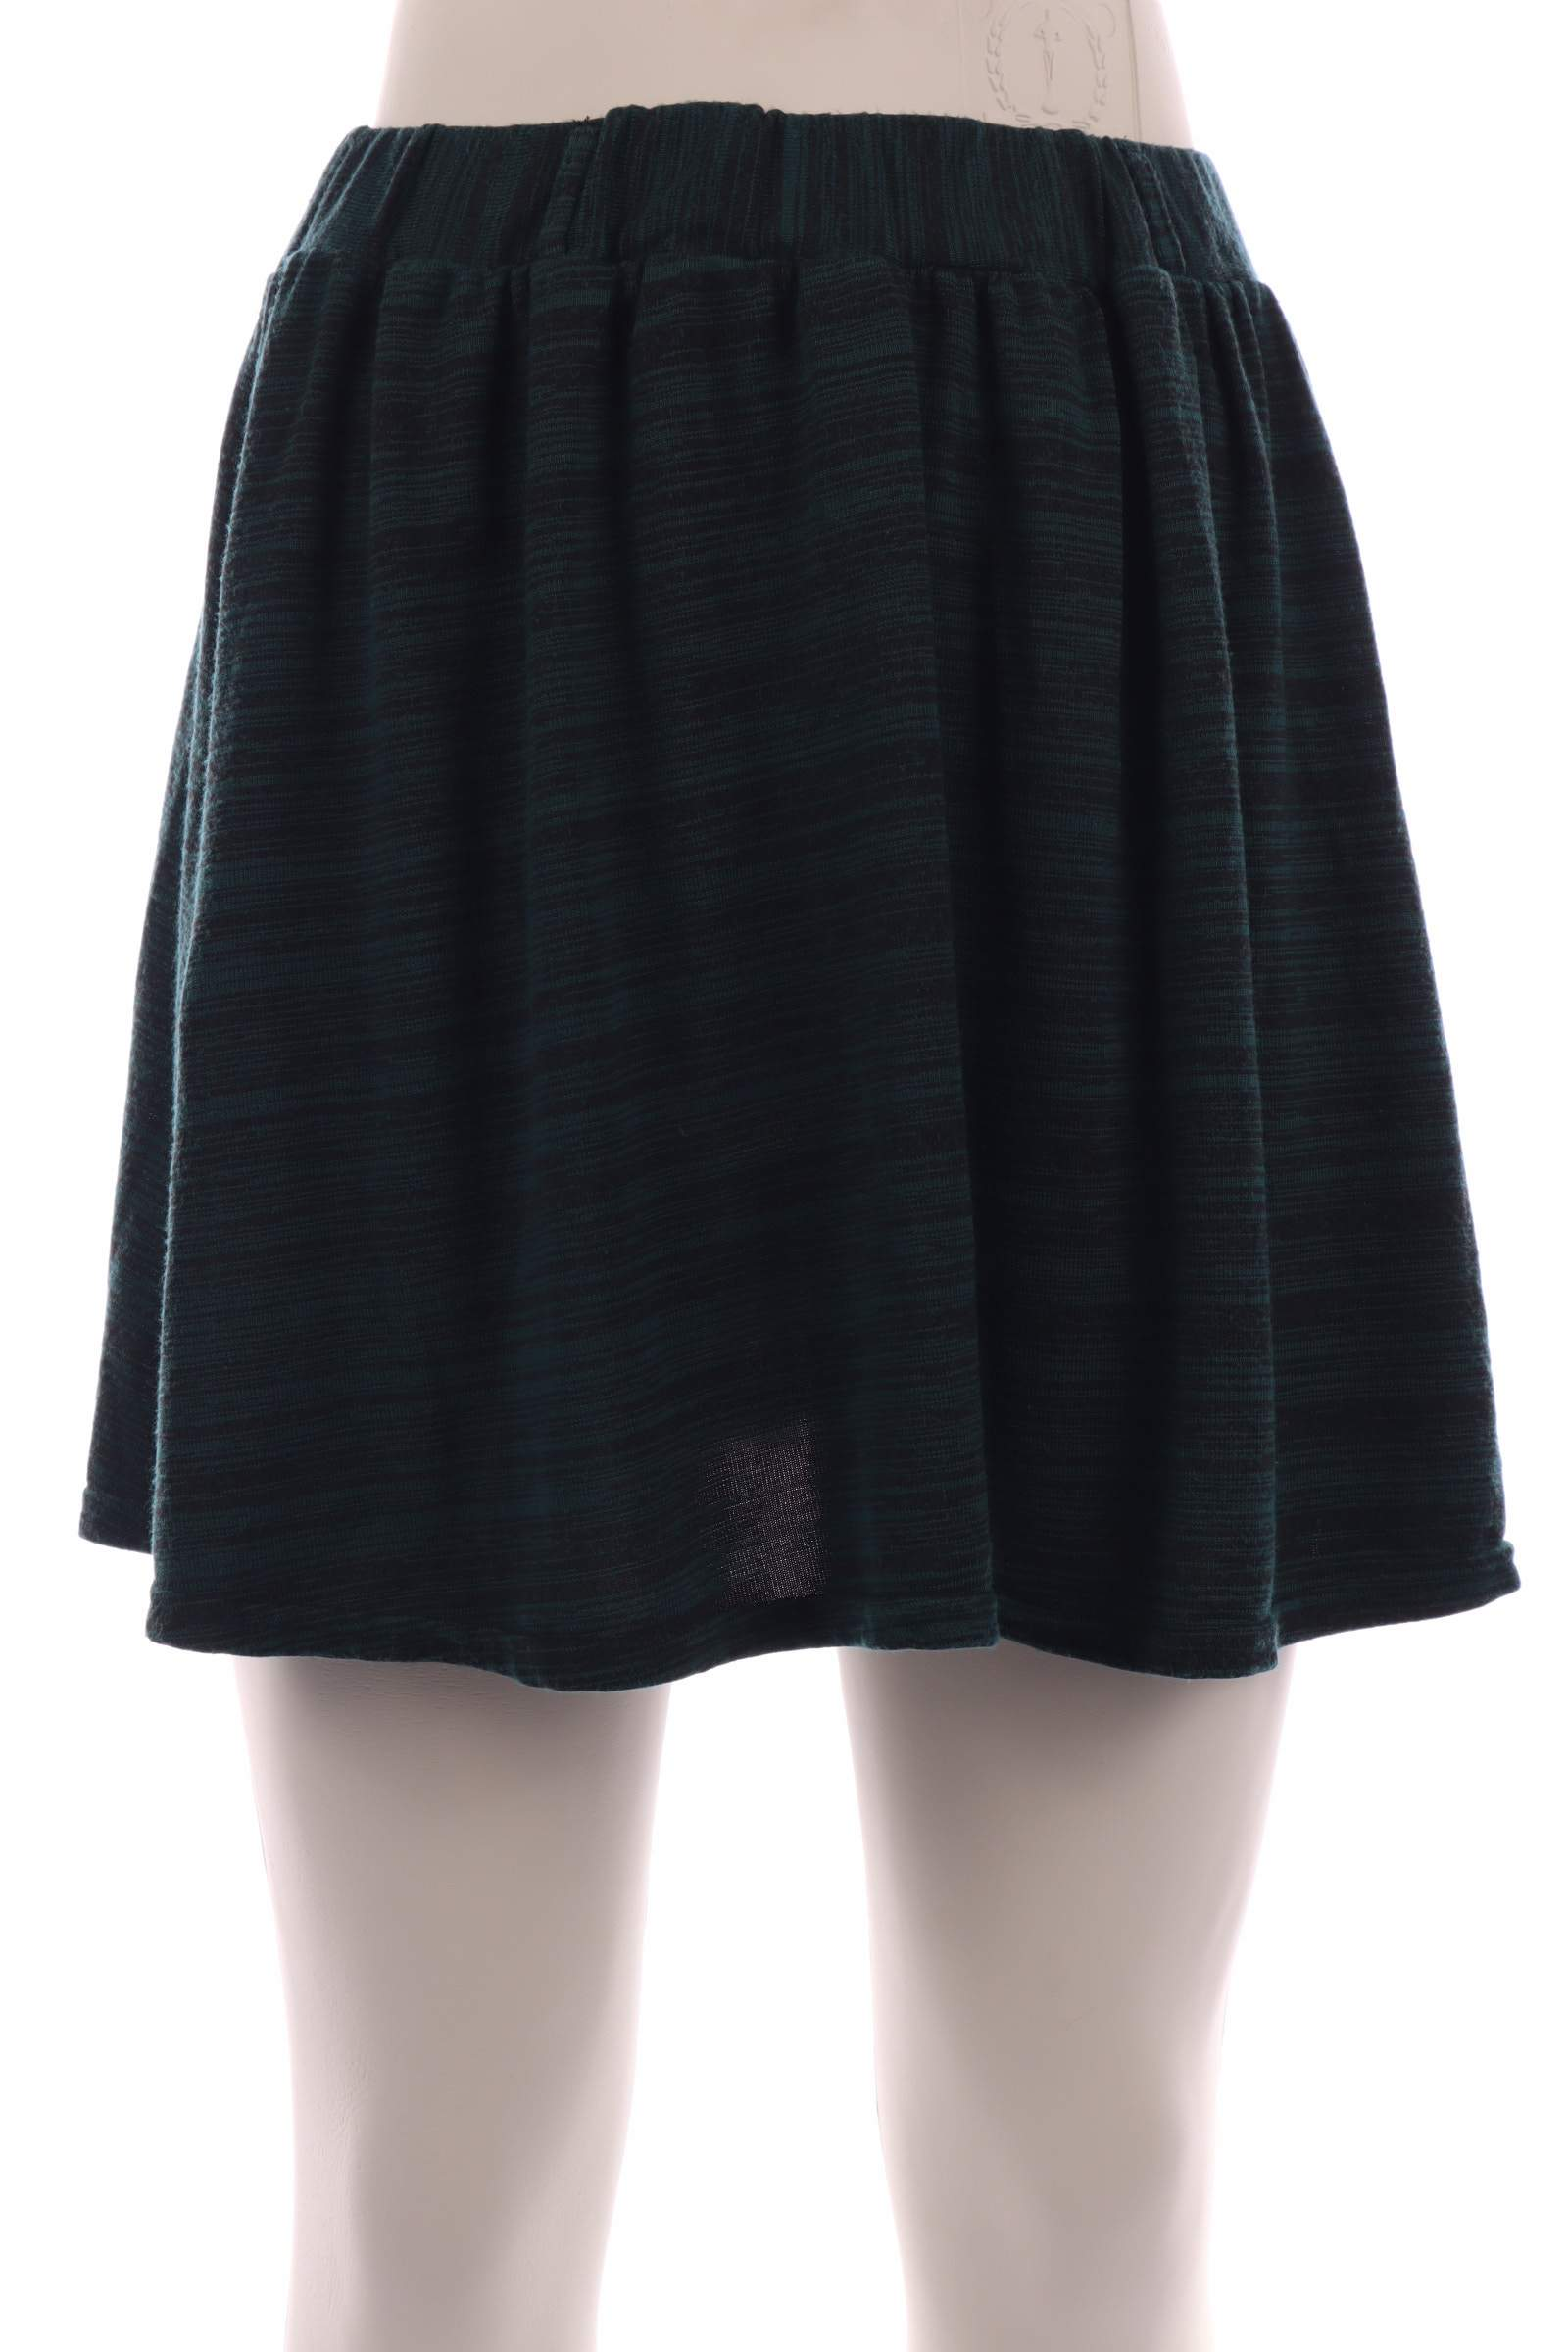 Atmosphere Green Skirt - upty.store